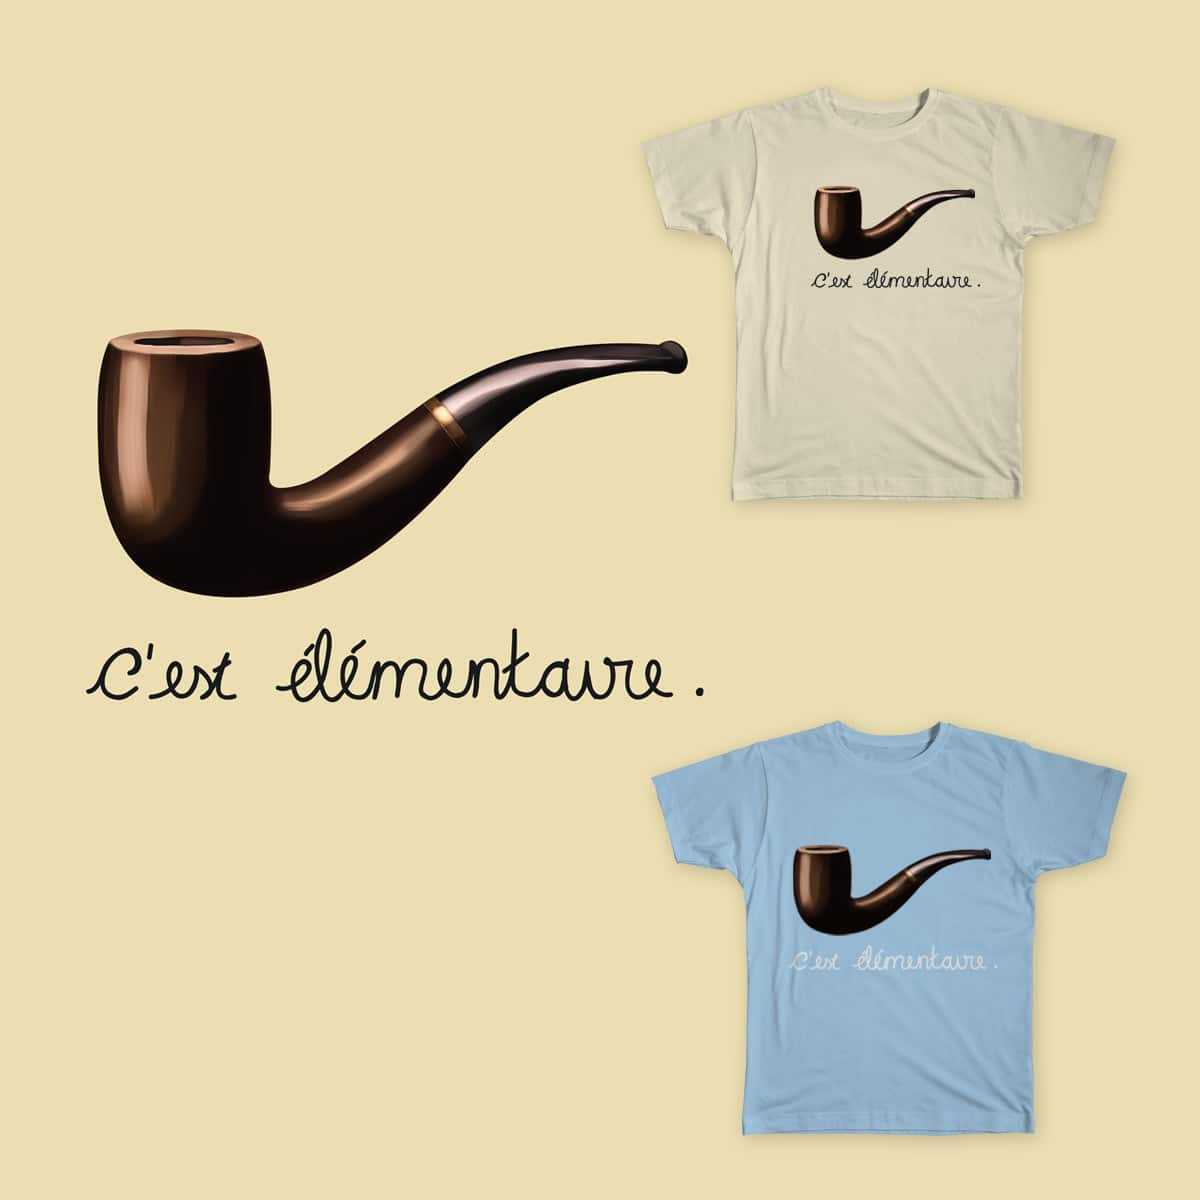 C'est élémentaire by Willian_Richard and tobiasfonseca on Threadless